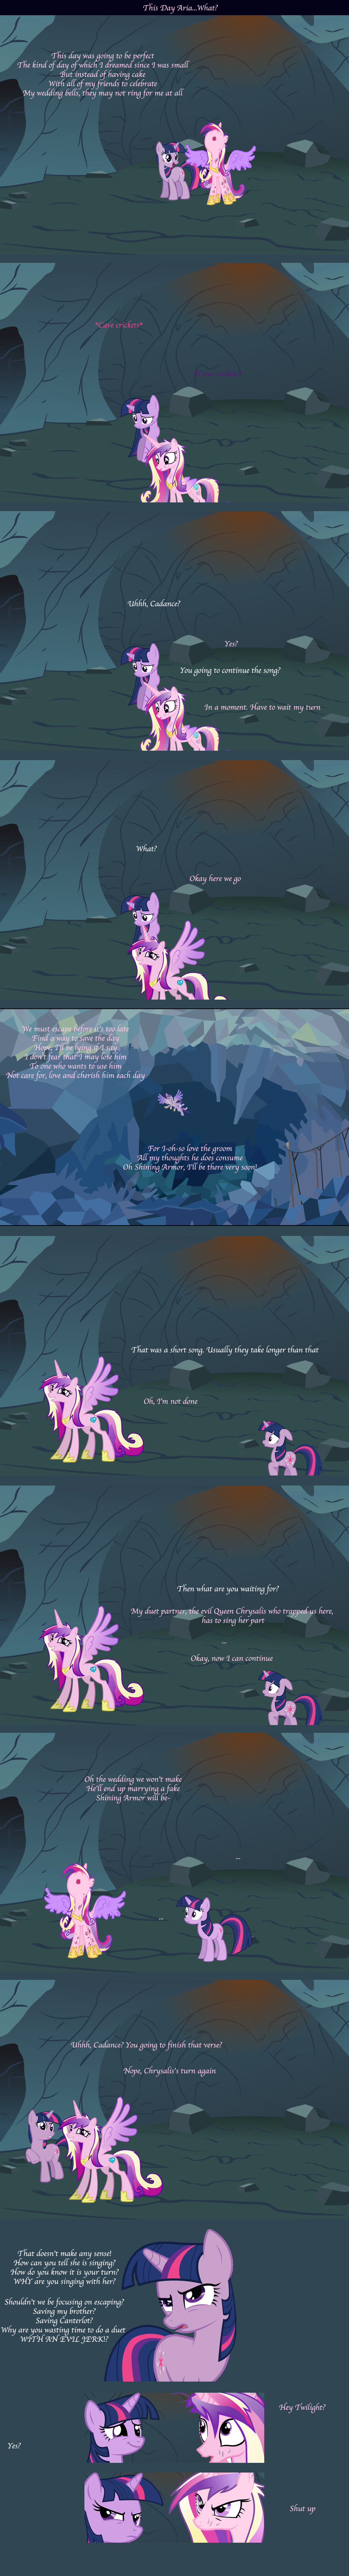 This Day Aria...What? by Thundercracker417